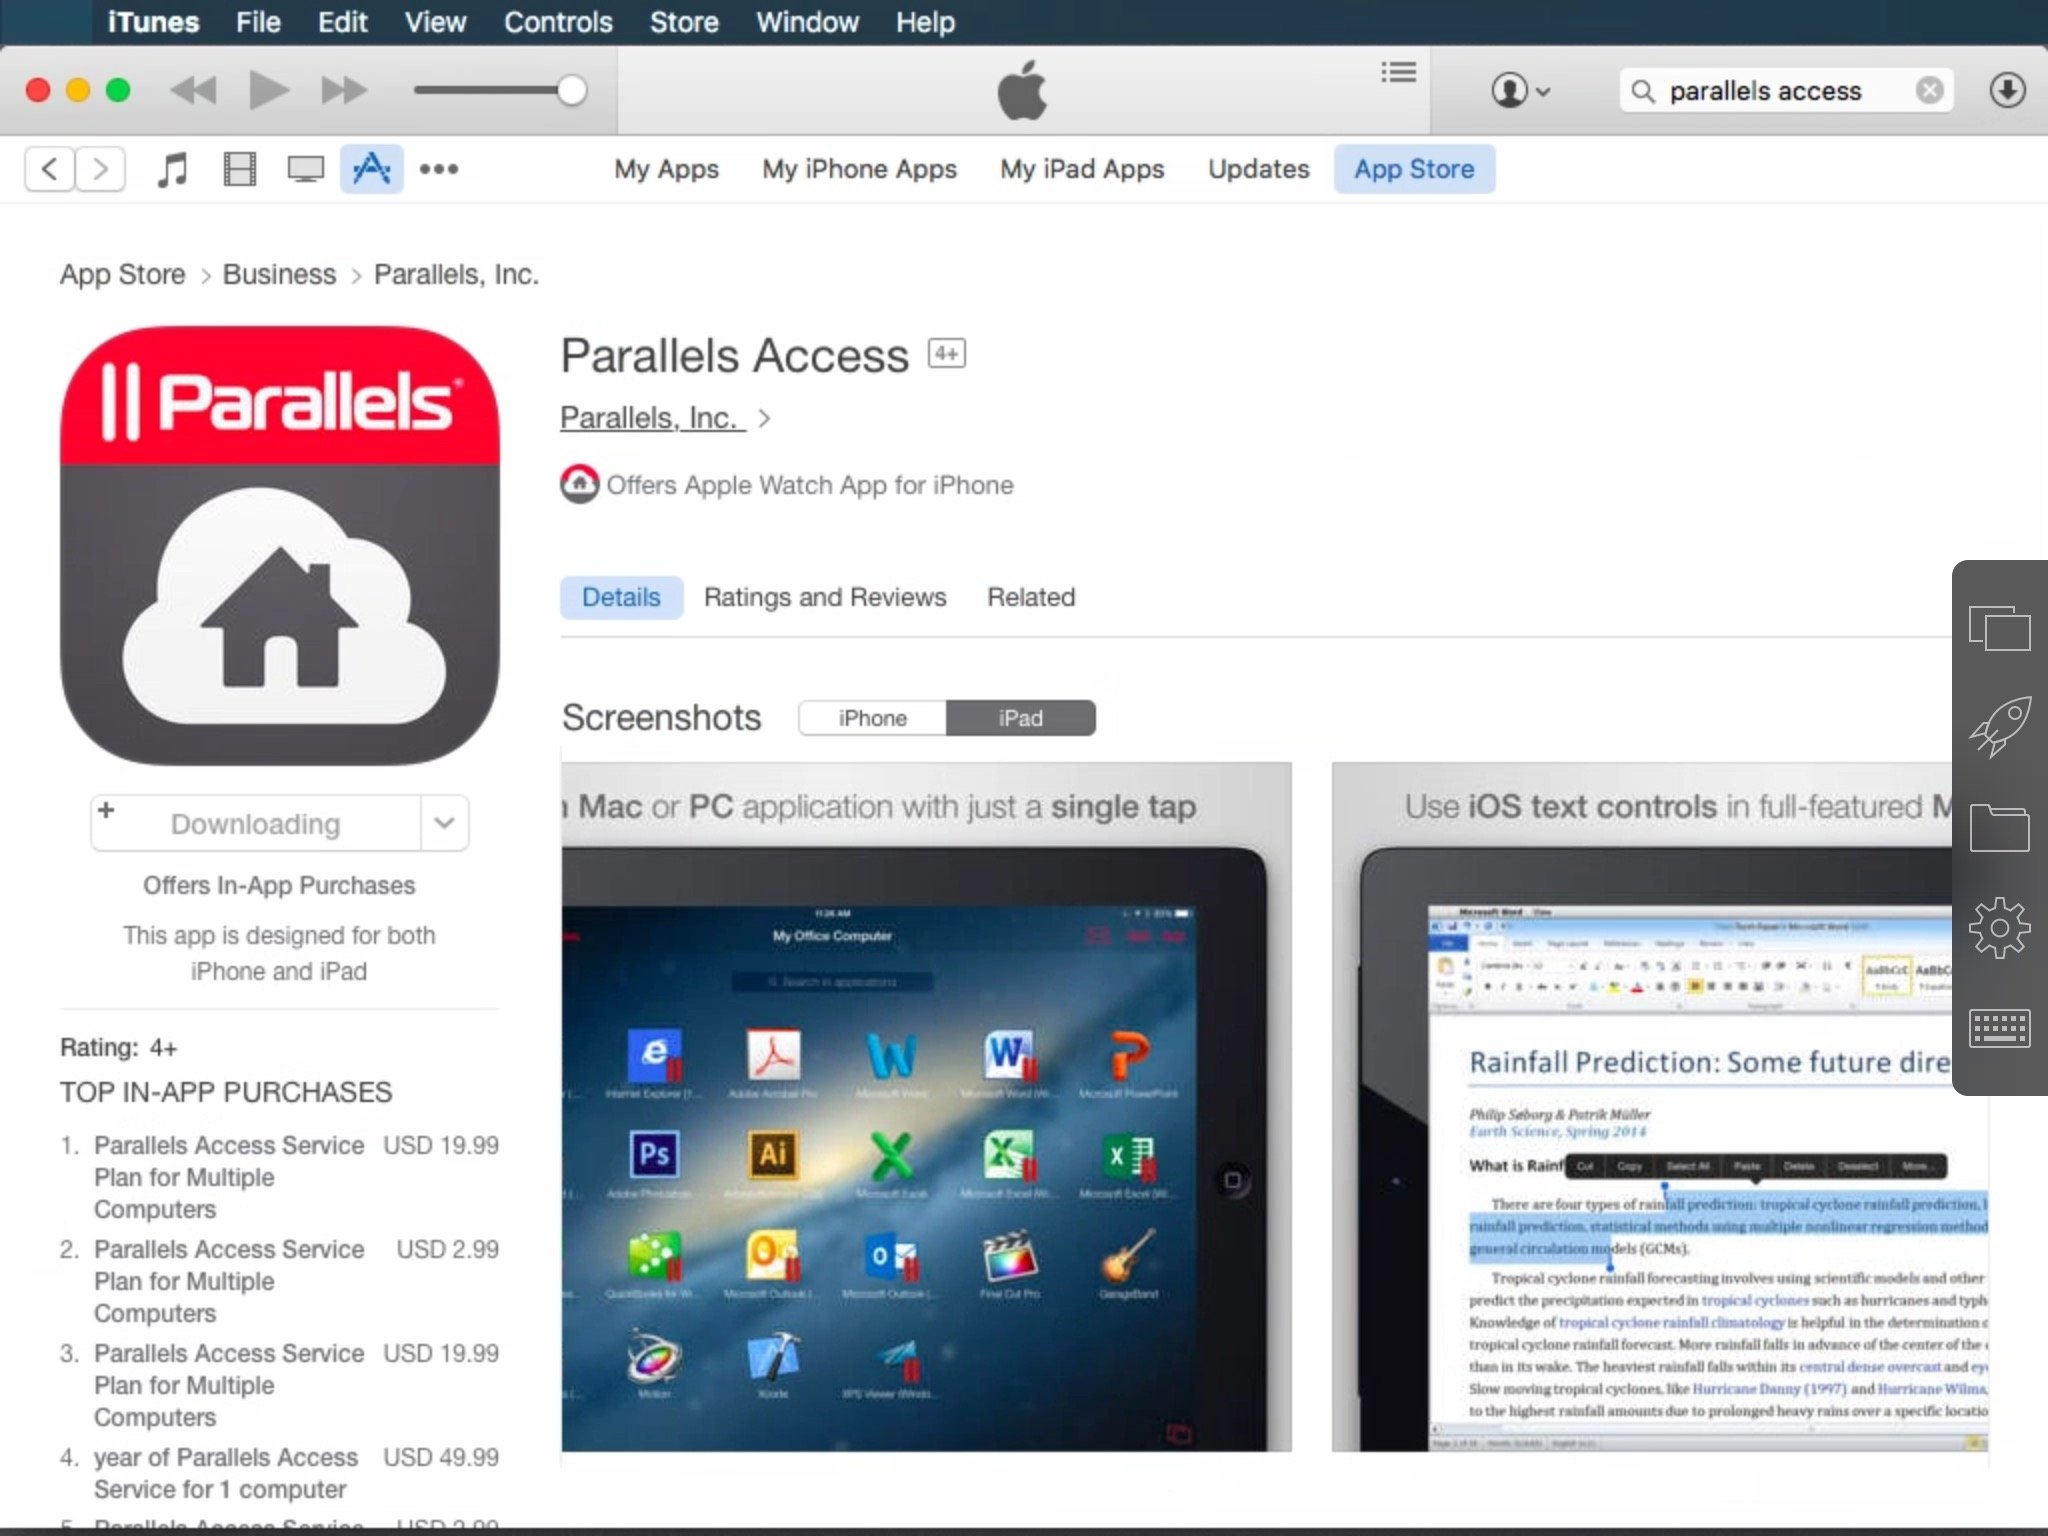 iTunes Parallels Access